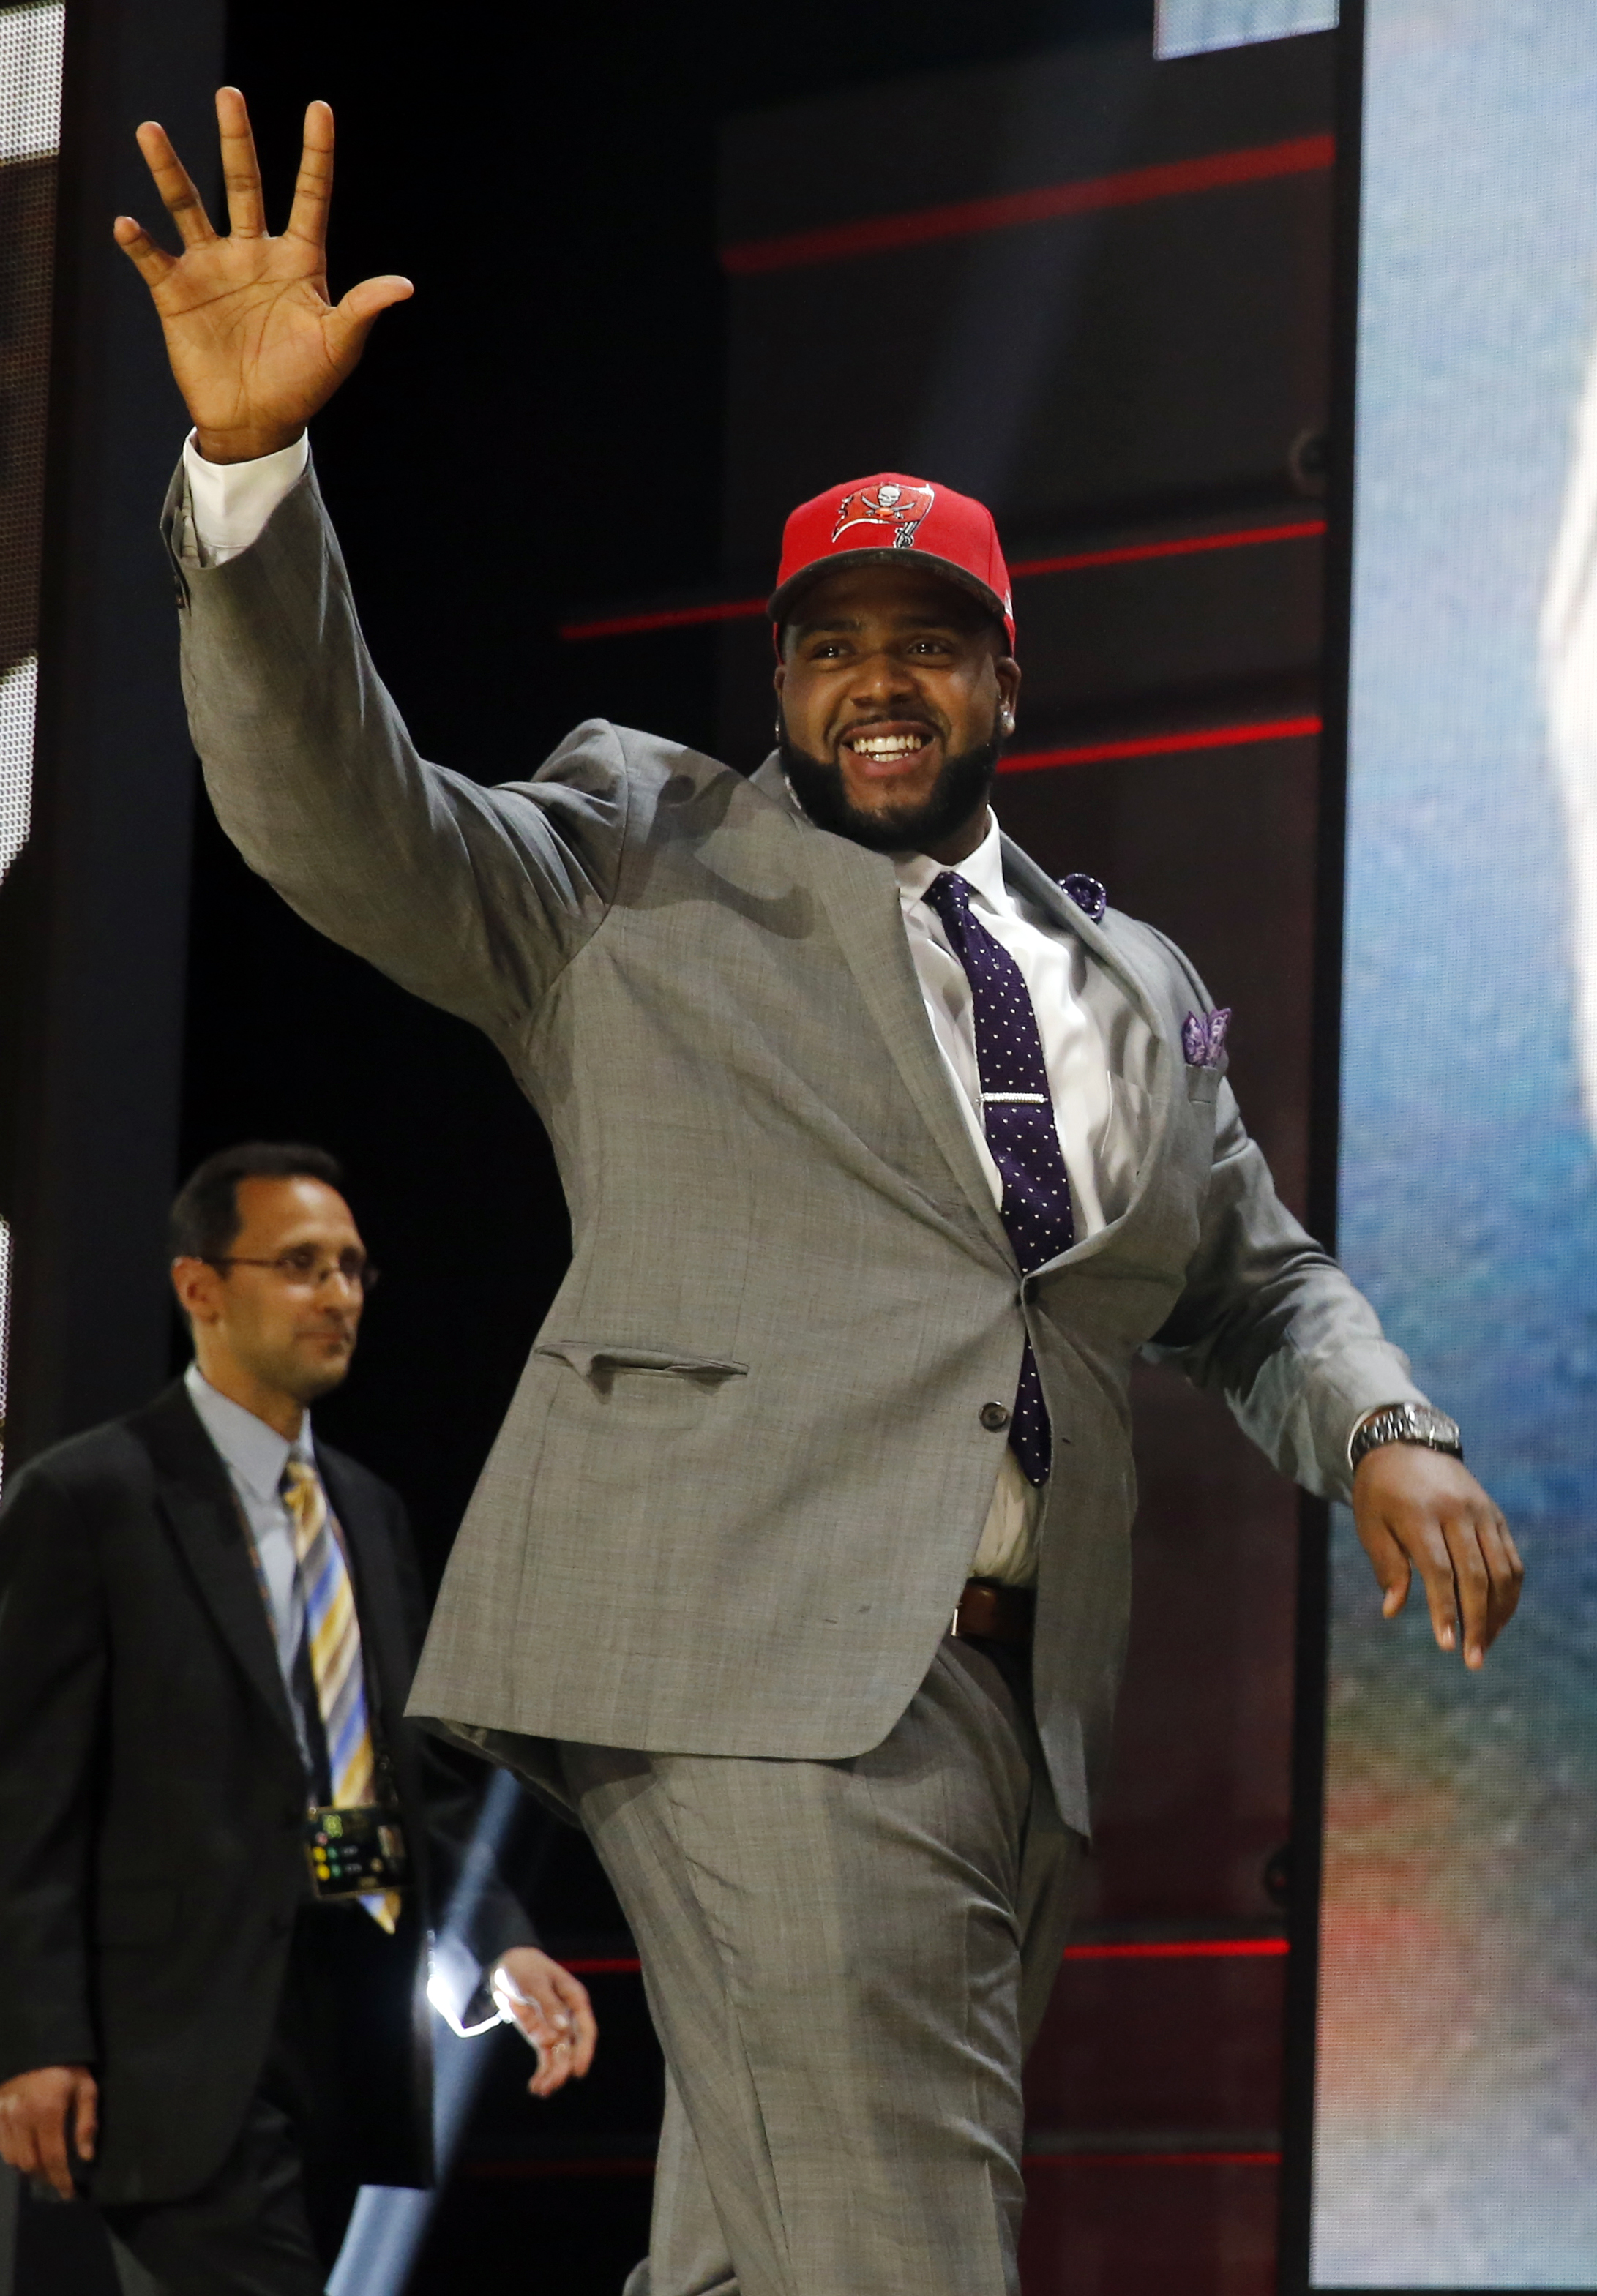 Penn State offensive lineman Donovan Smith celebrates after being selected by the Tampa Bay Buccaneers as the 34th pick in the second round of the 2015 NFL Football Draft,  Friday, May 1, 2015, in Chicago. (AP Photo/Charles Rex Arbogast)